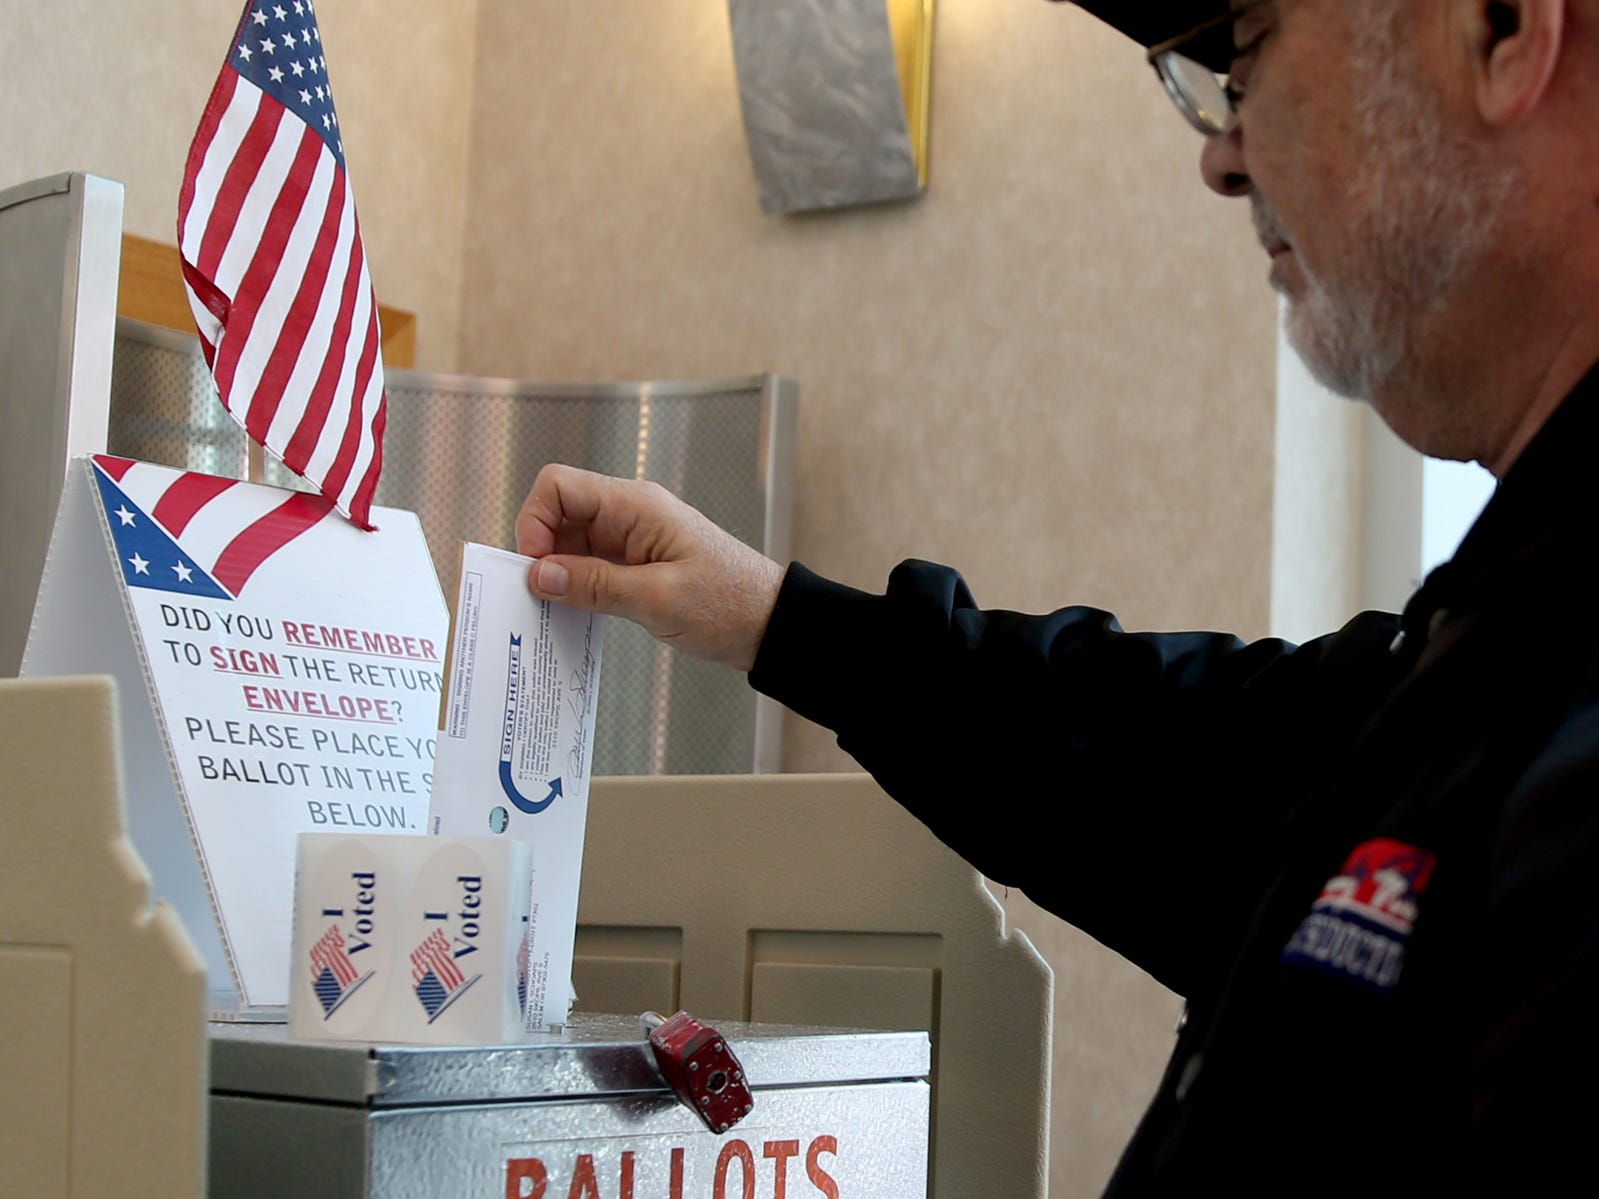 Ed Schoaps, of Salem, drop off ballots to a drop box near the Marion County Elections Office in Salem on Election Day, Tuesday, Nov. 6, 2018.